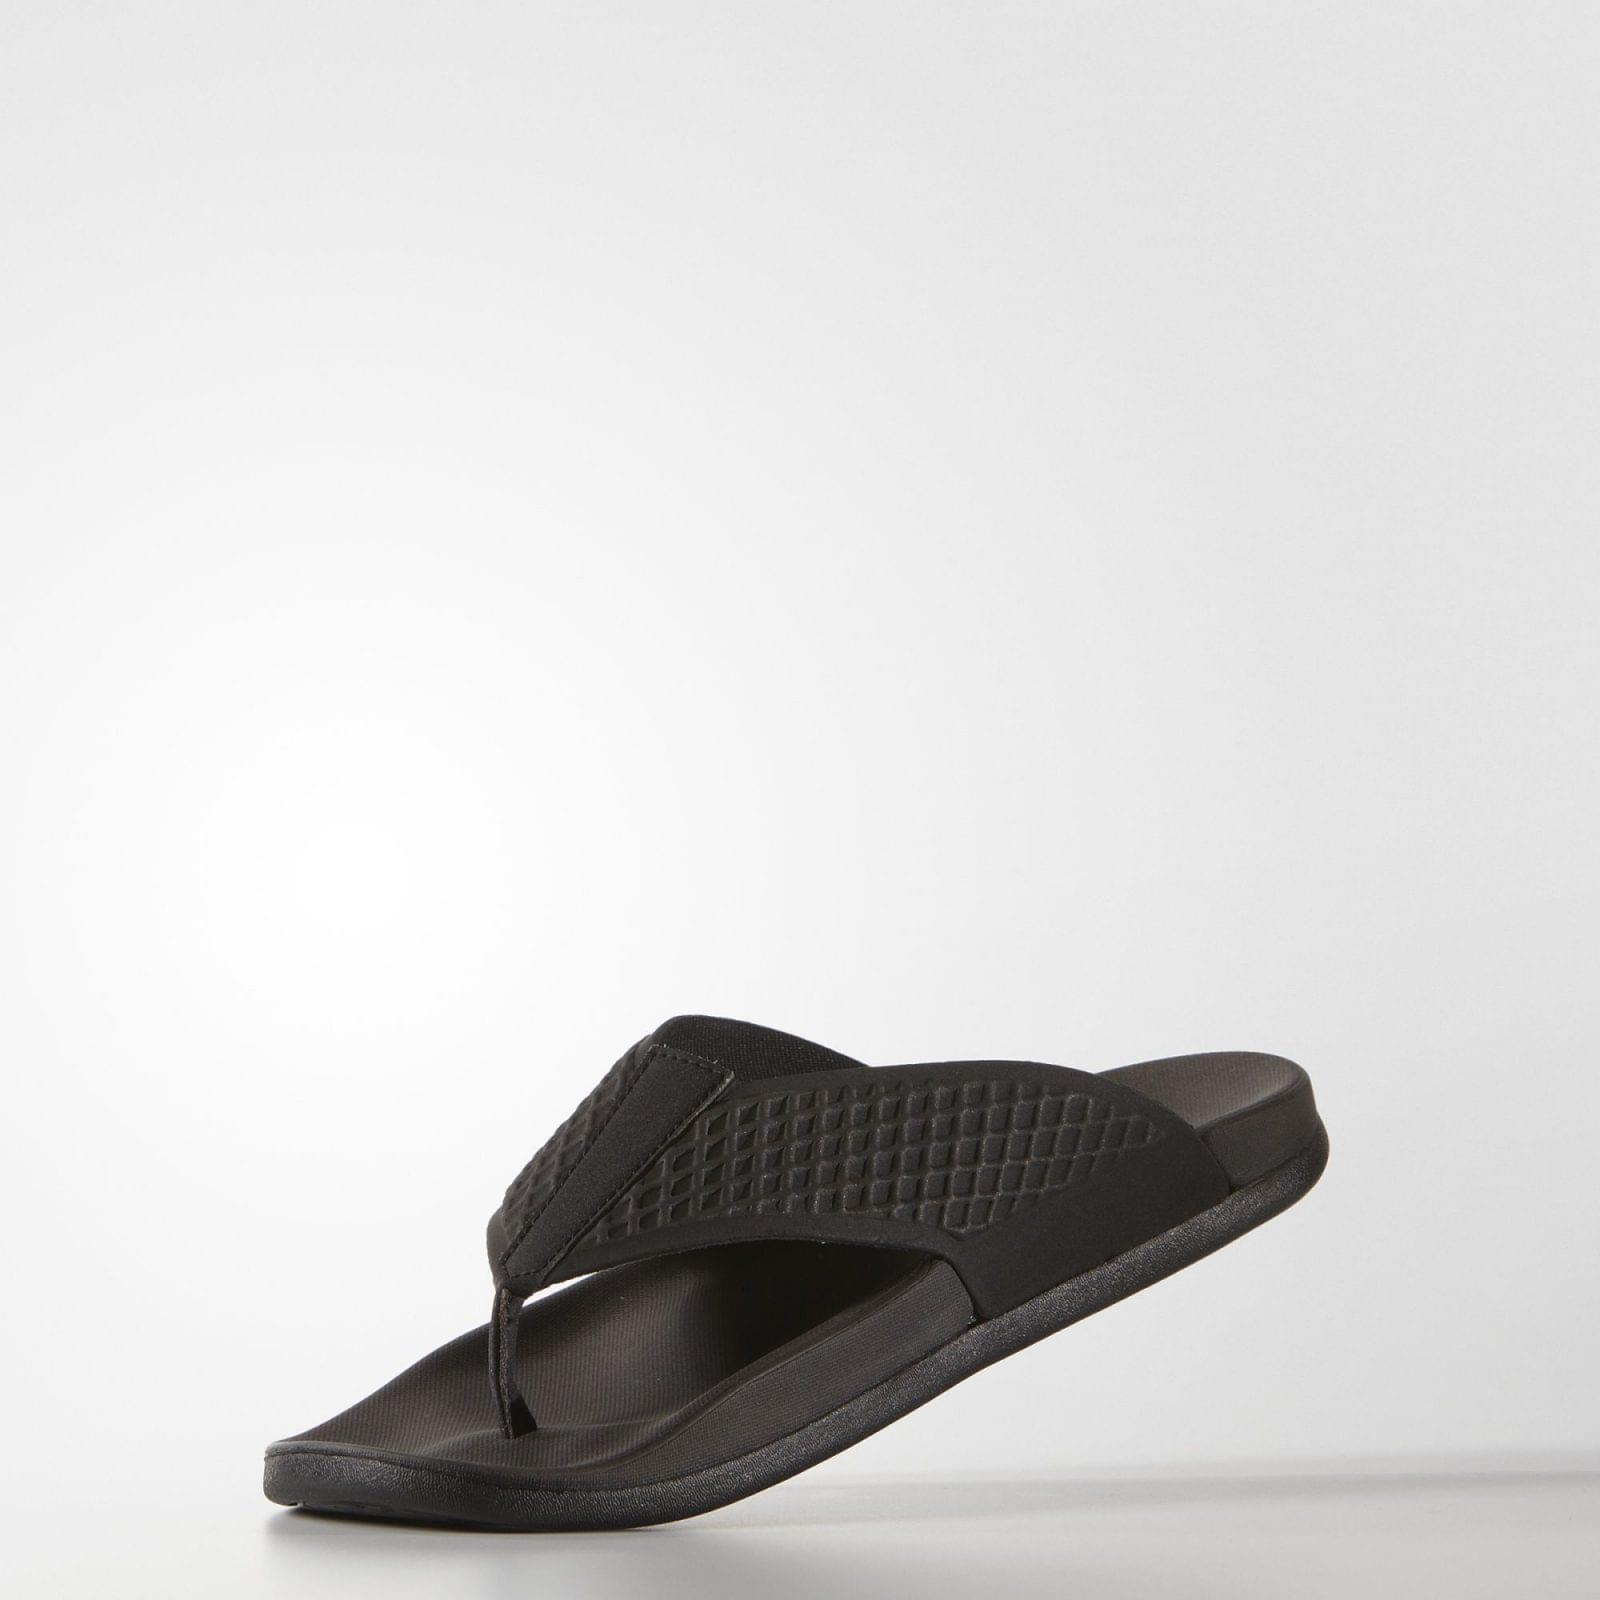 a66e5c270 Published 15th August 2017 at 2000 × 2000 in ADIDAS ADILETTE SUPERCLOUD  PLUS SANDAL MENS